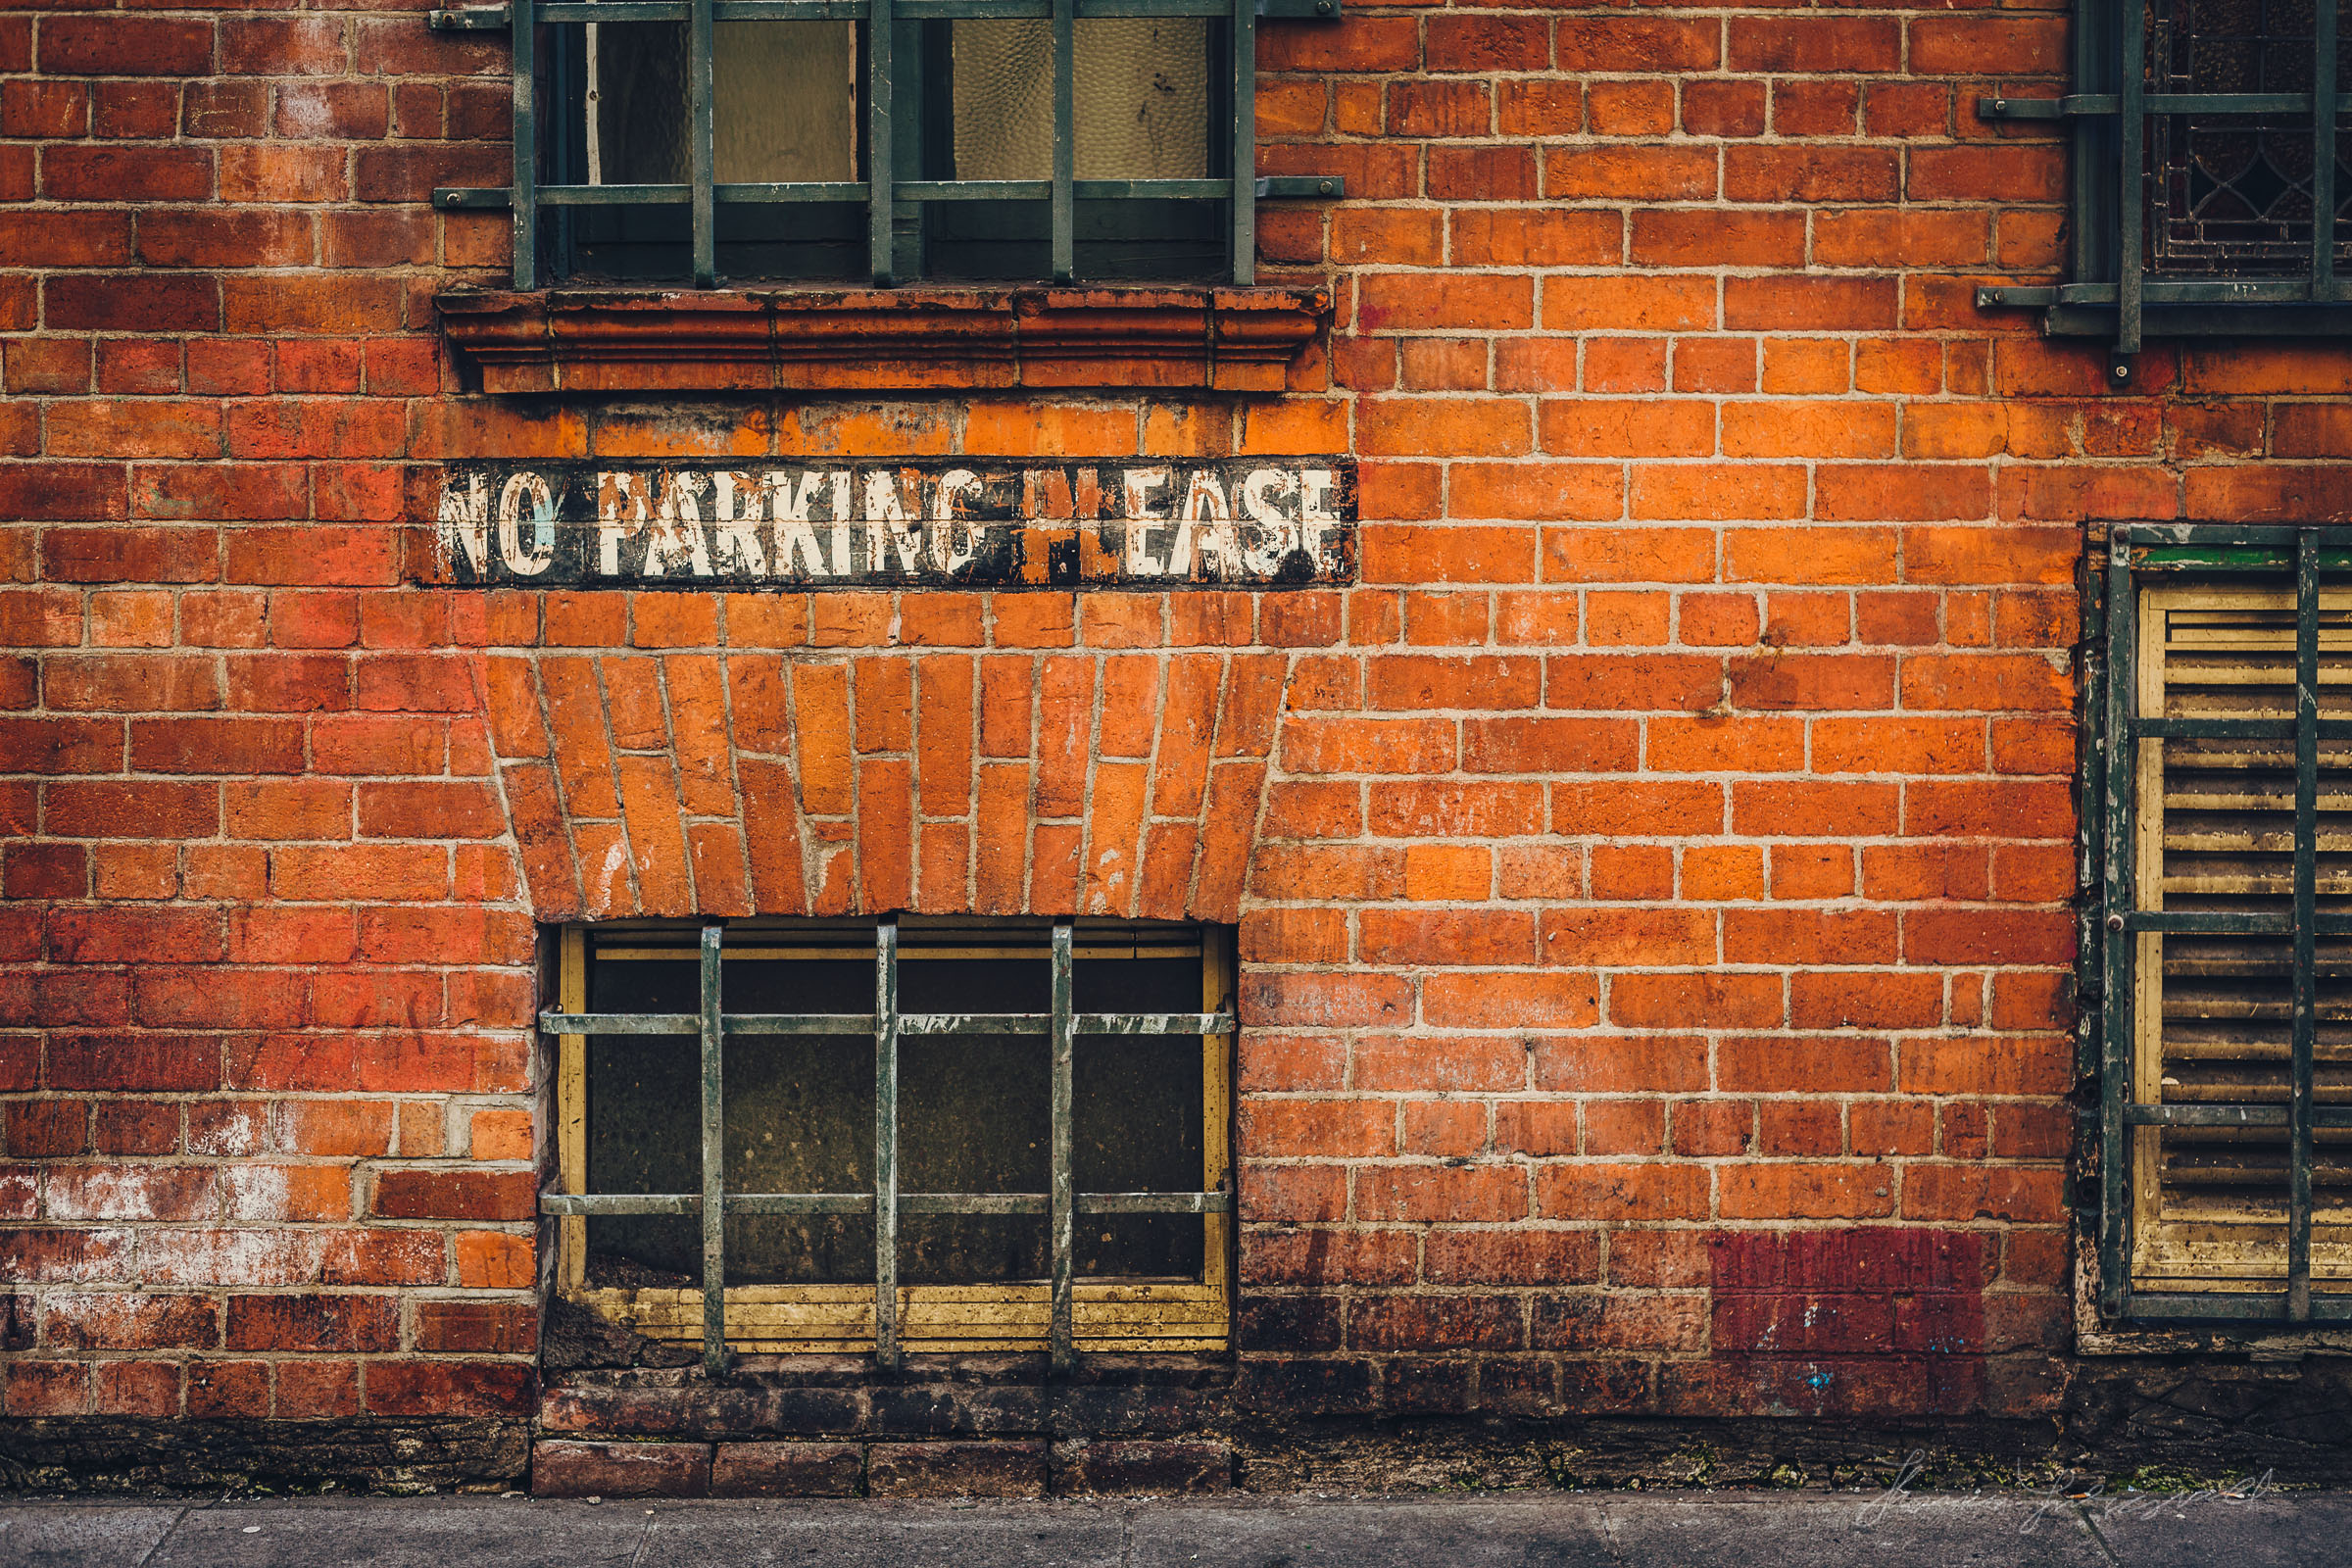 No Parking Please text on a Wall